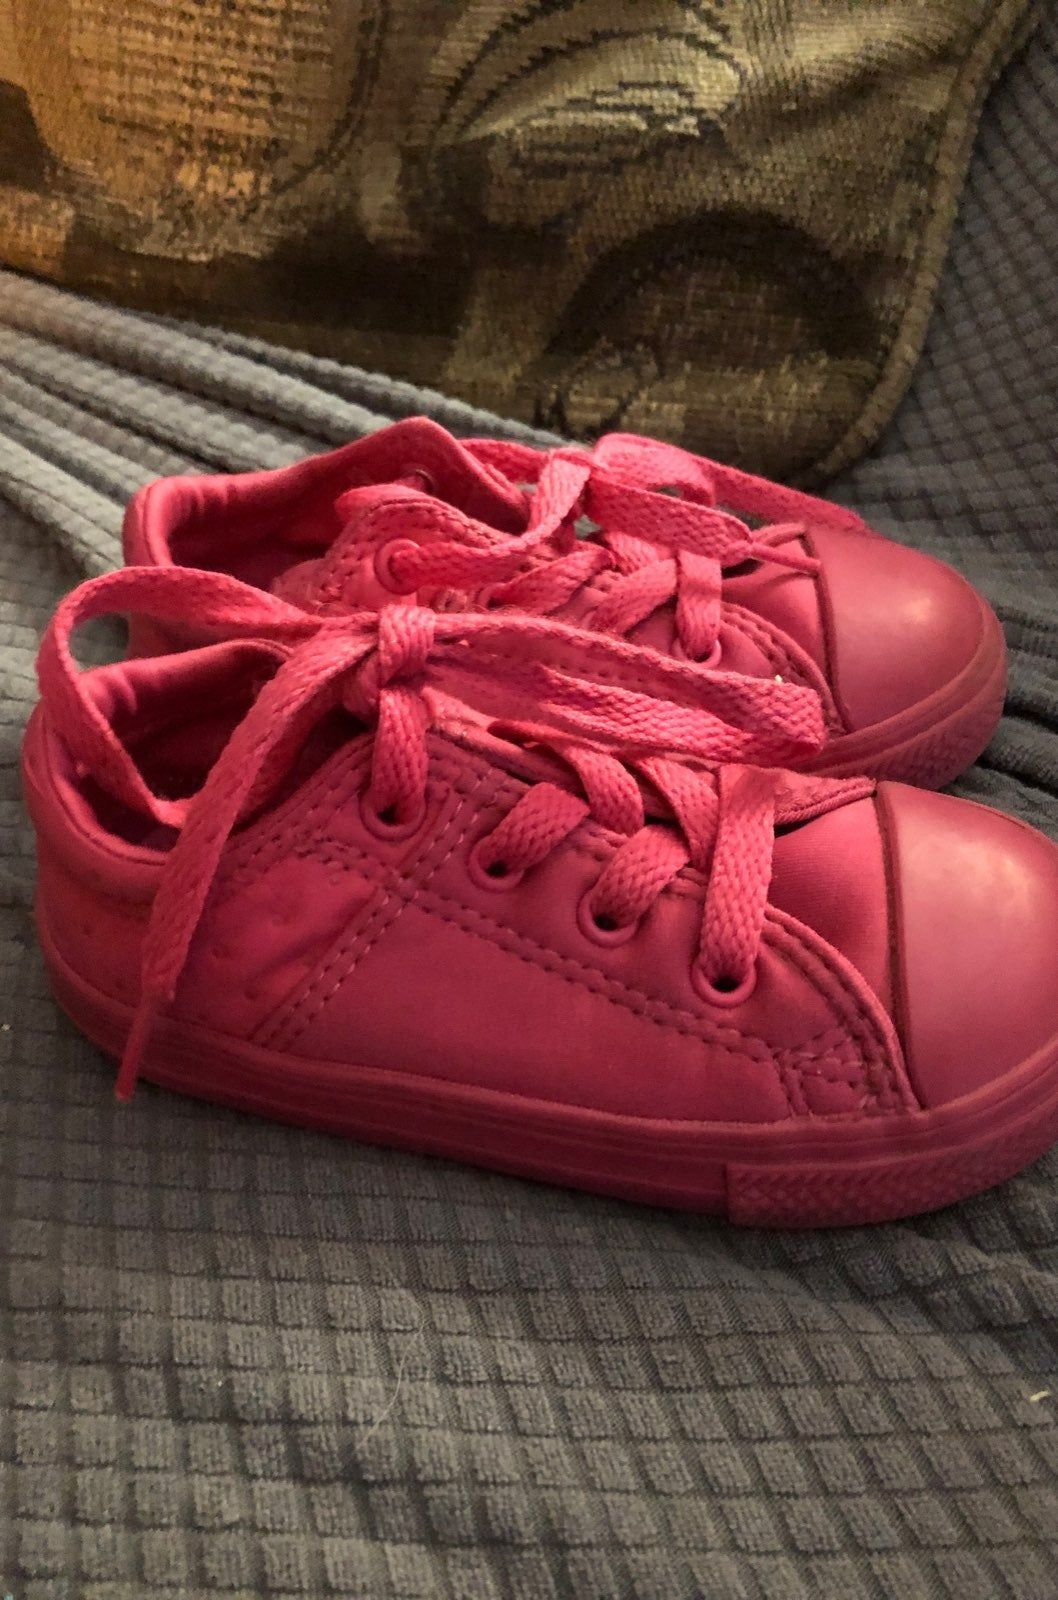 Converse pink baby size 7 sneakers like